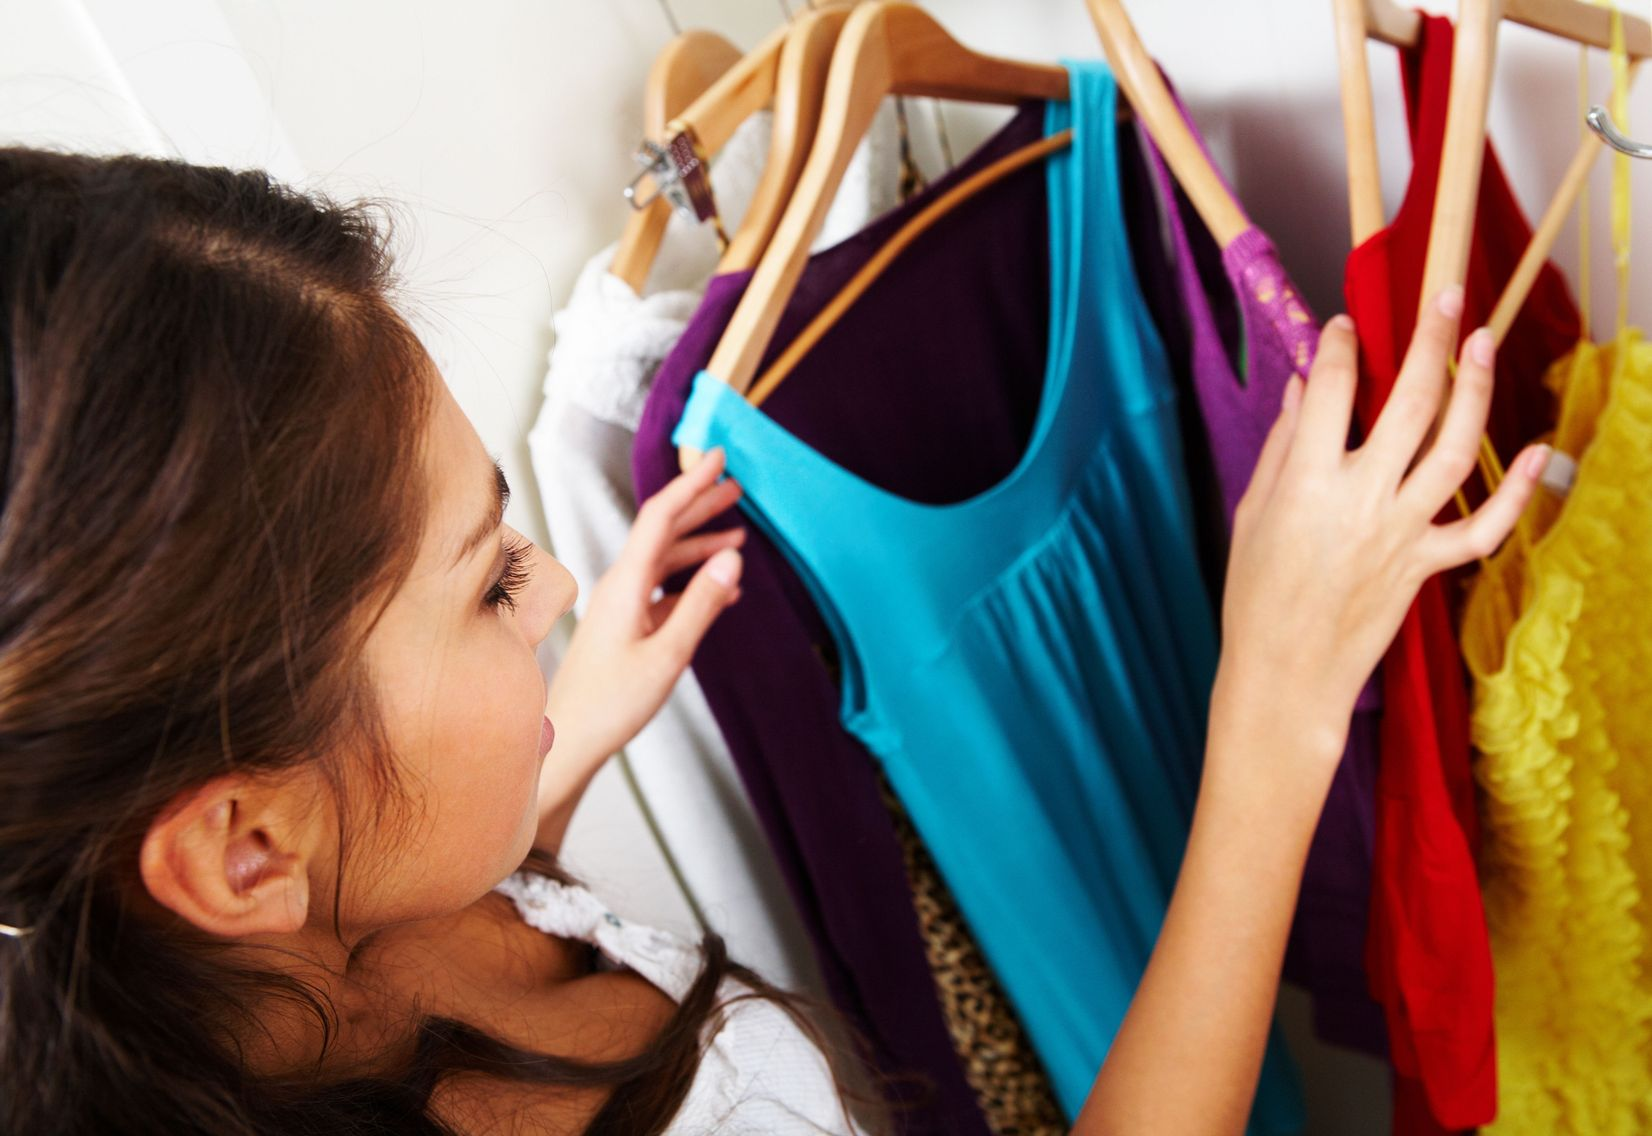 Clothes can be tough to declutter, but look through each item hanging in your closet and decide which ones you love.